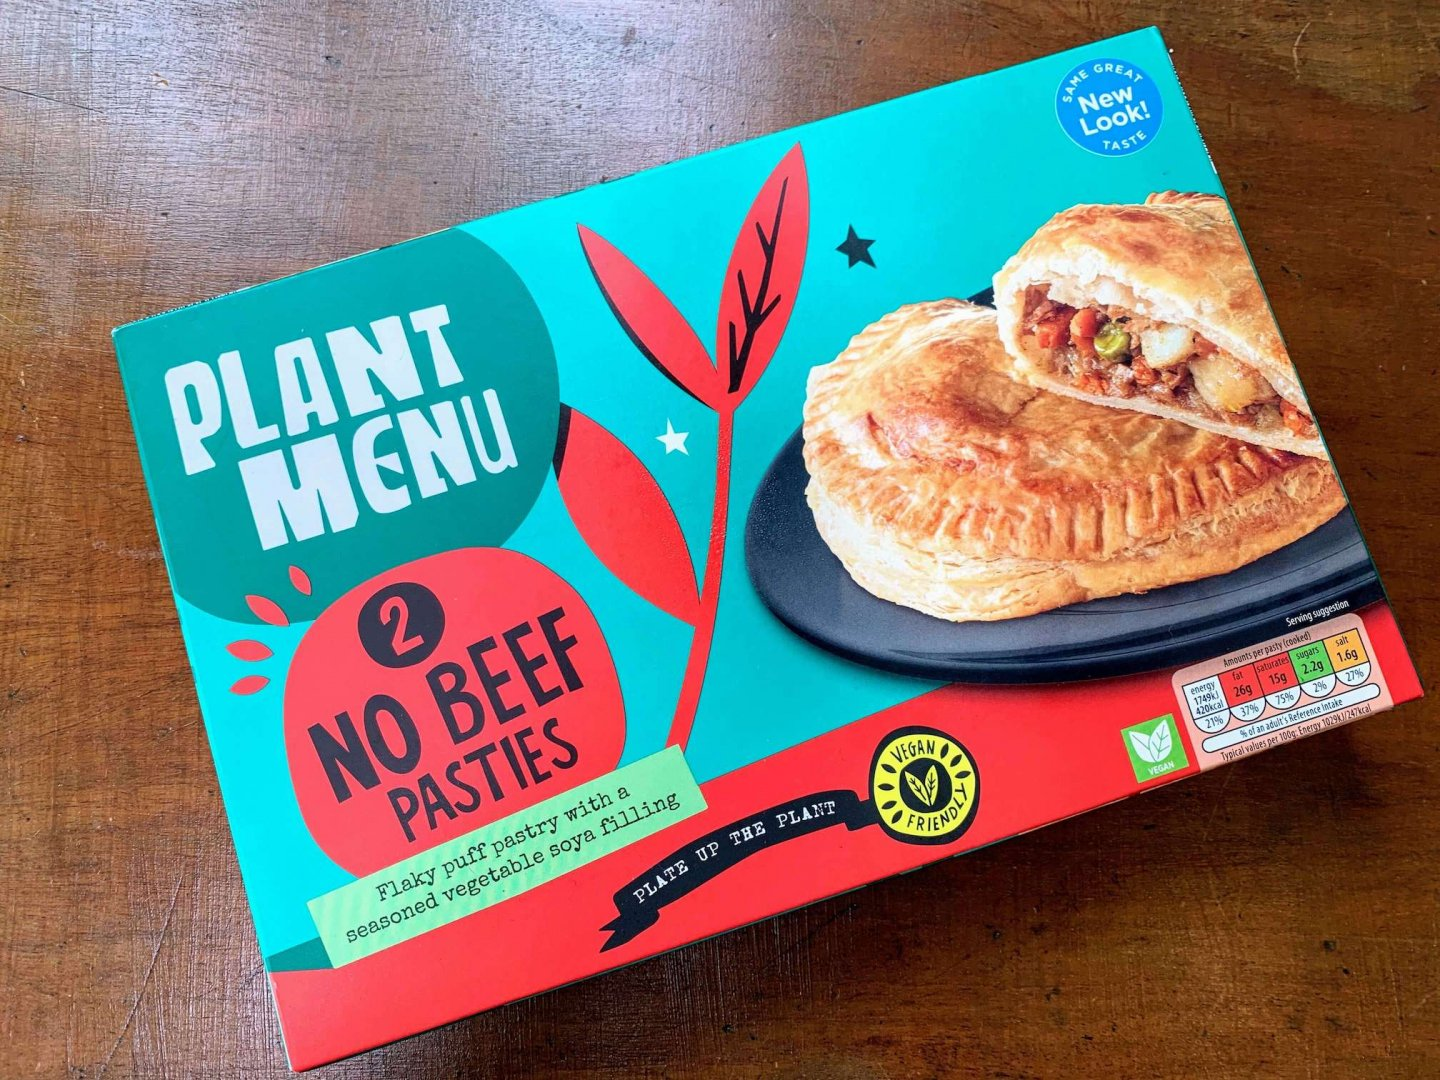 Aldi Plant Menu No Beef Pasties –  Product Review